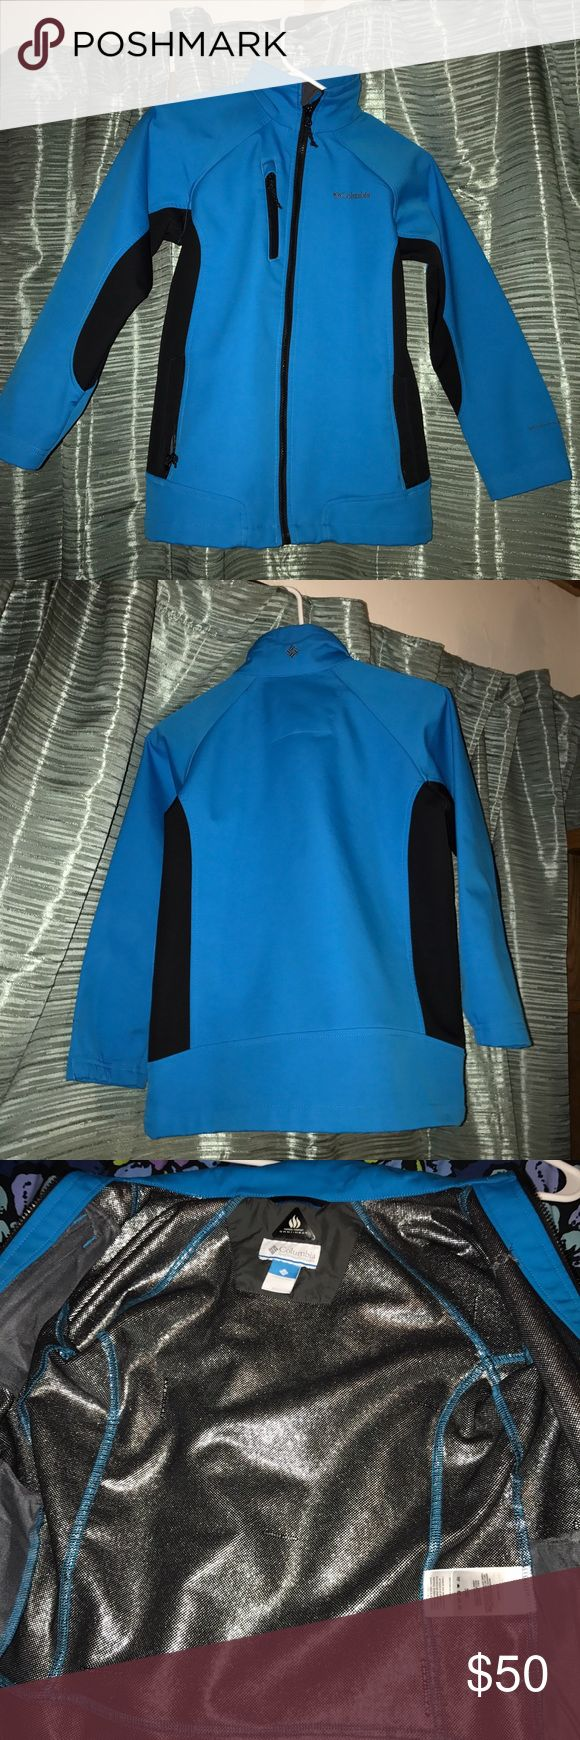 Columbia jacket Colombia thermal comfort Omni heat jacket/coat. No stains or tears and barely worn, just outgrew. 100% polyester. Columbia Jackets & Coats